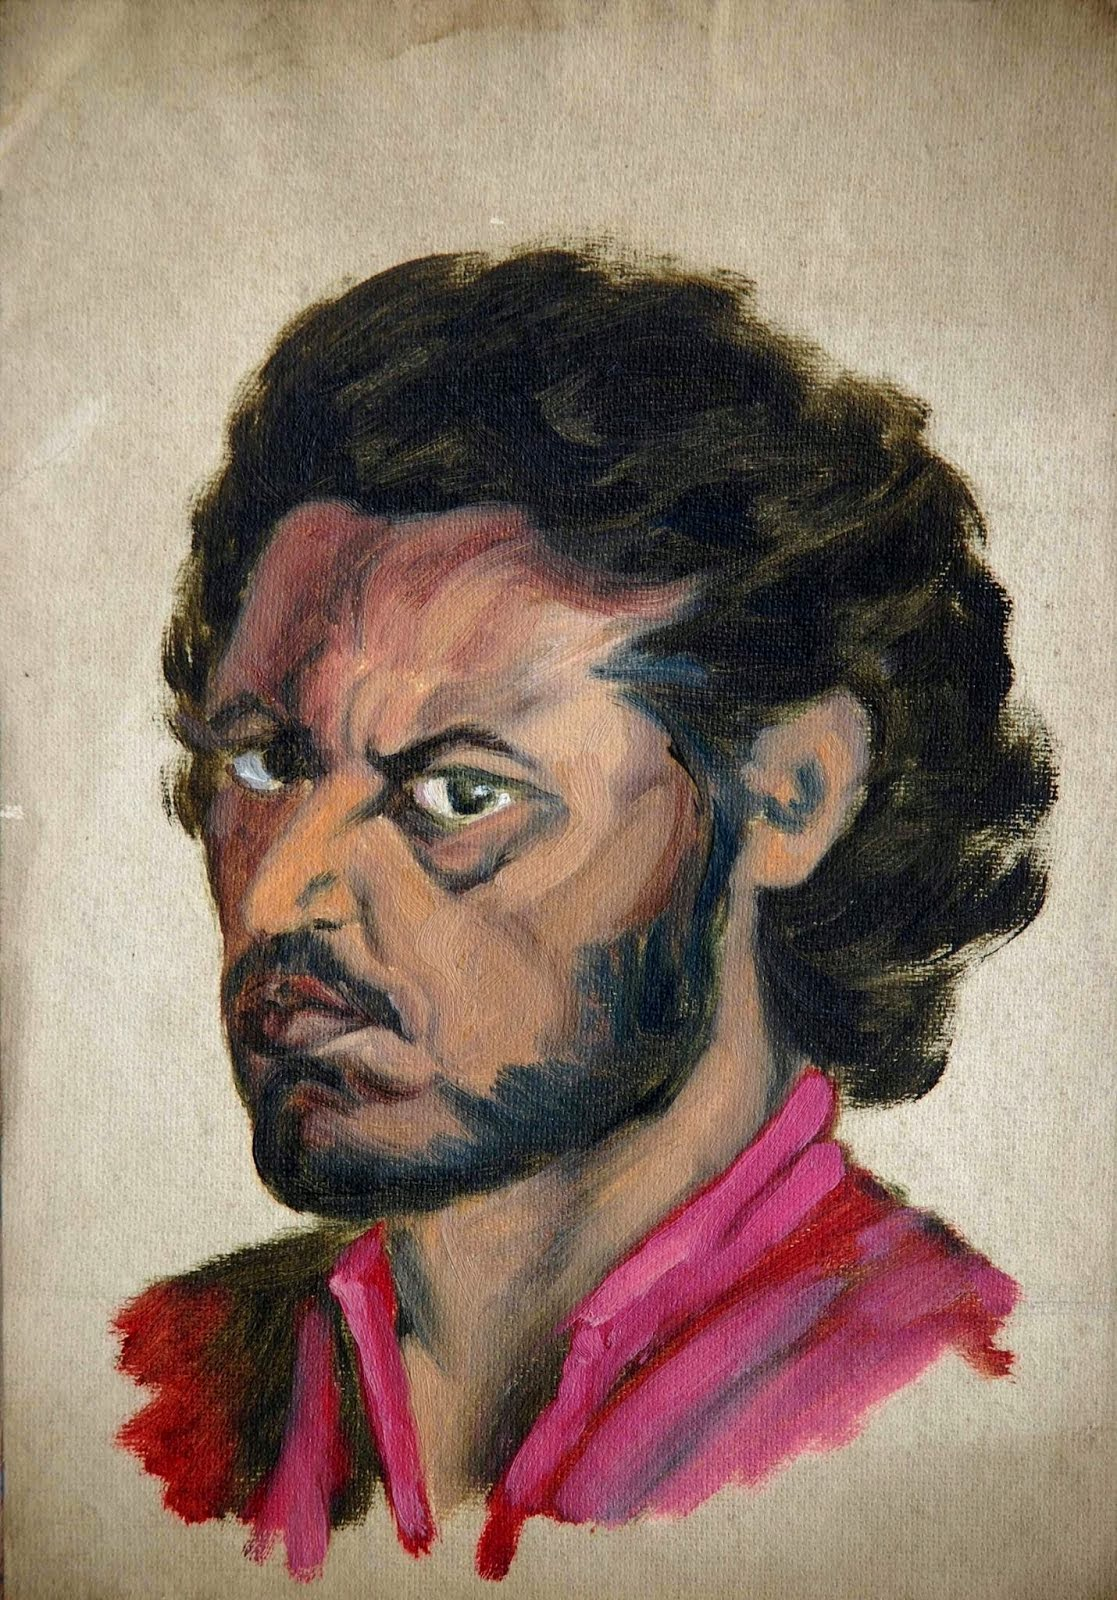 Self portrait of Hungryalist painter Anil Karanjai